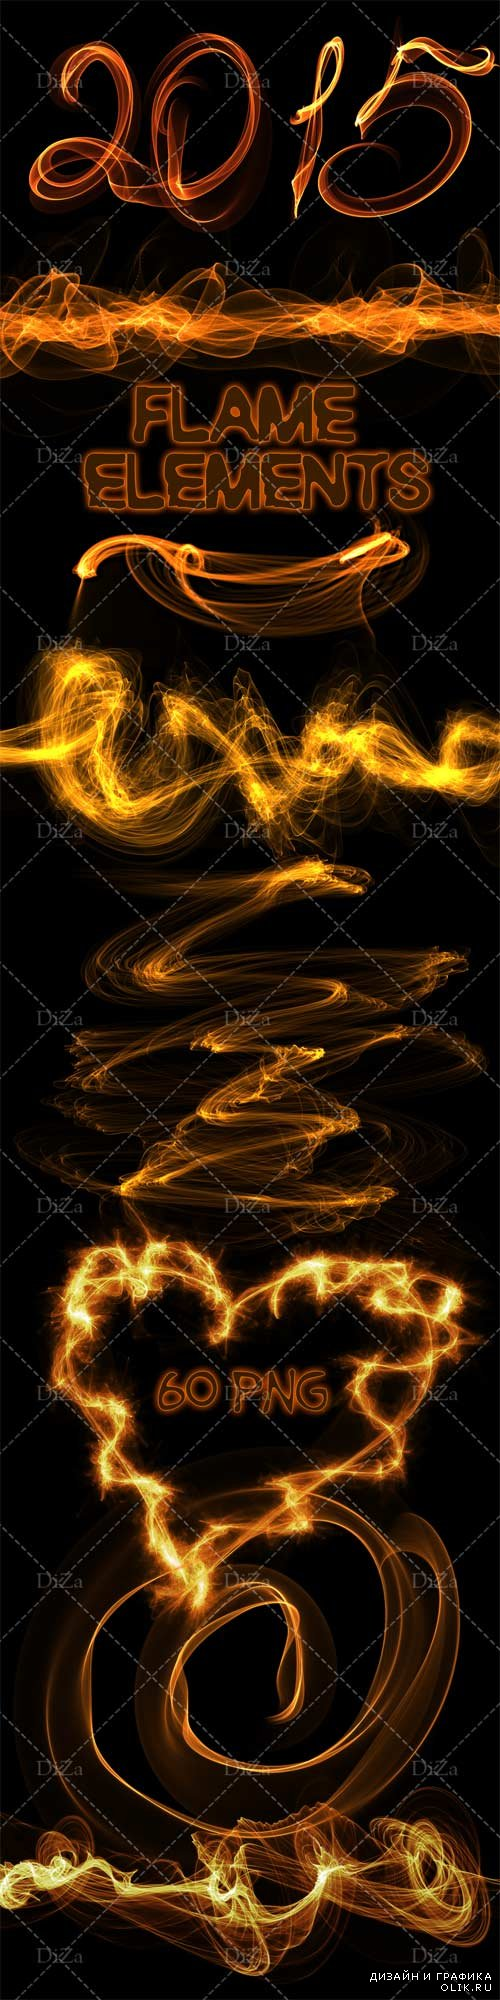 Flame elements on a transparent background